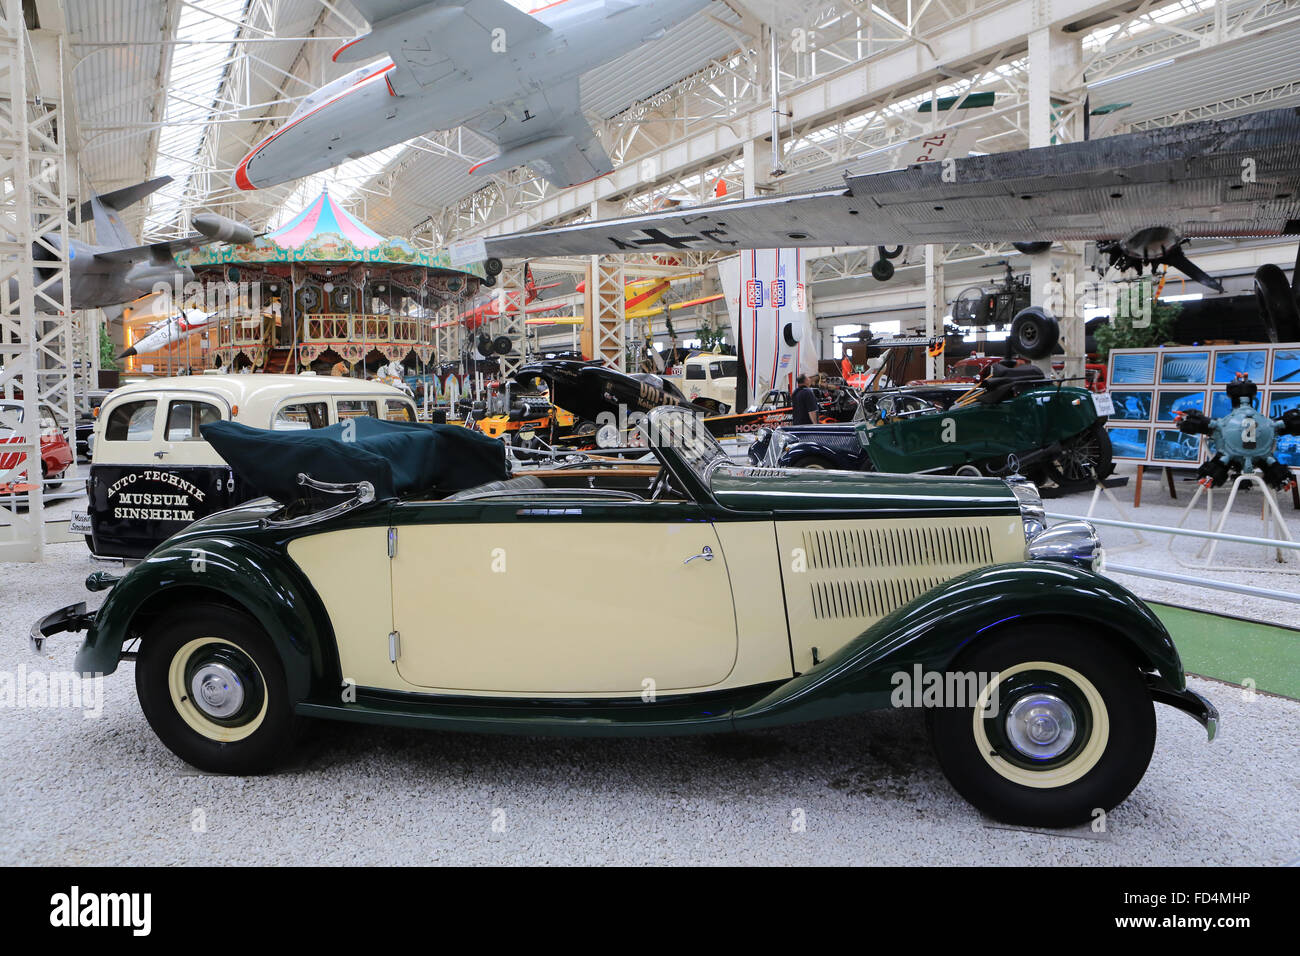 Old cars show. The Speyer Technik Museum Stock Photo: 94146354 - Alamy